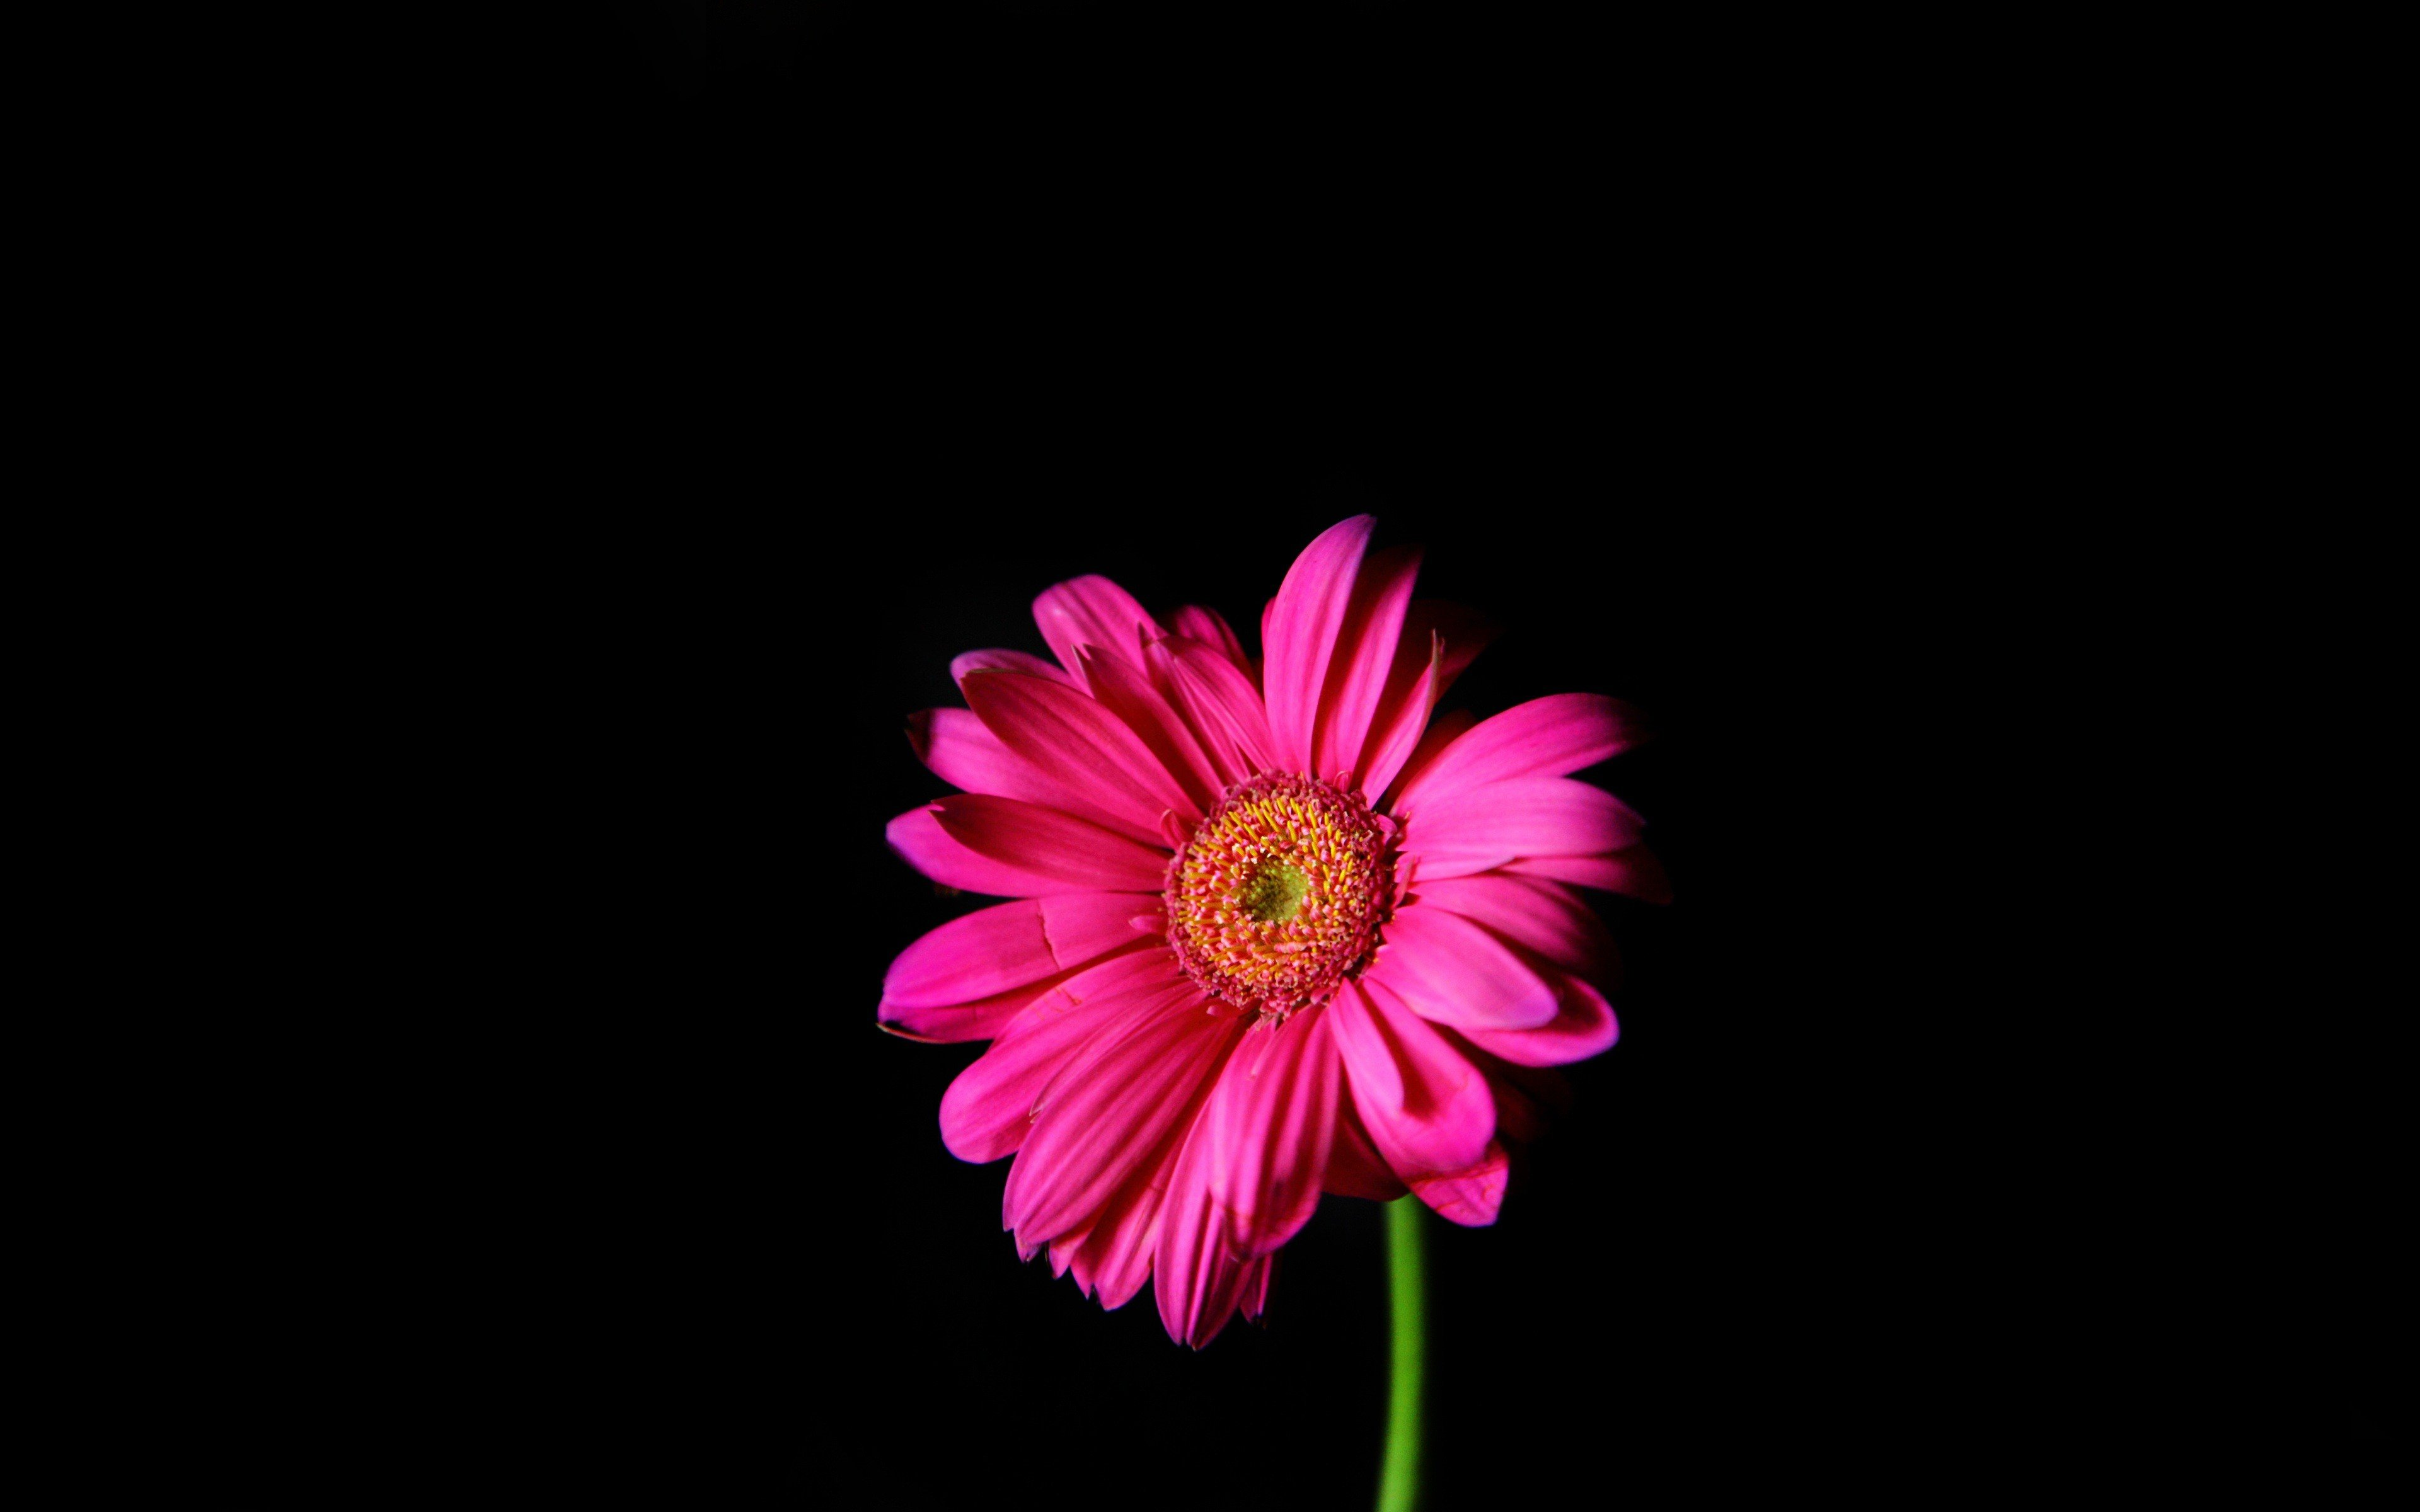 Flowers Pink Daisy Black Background Wallpaper 3840x2400 330096